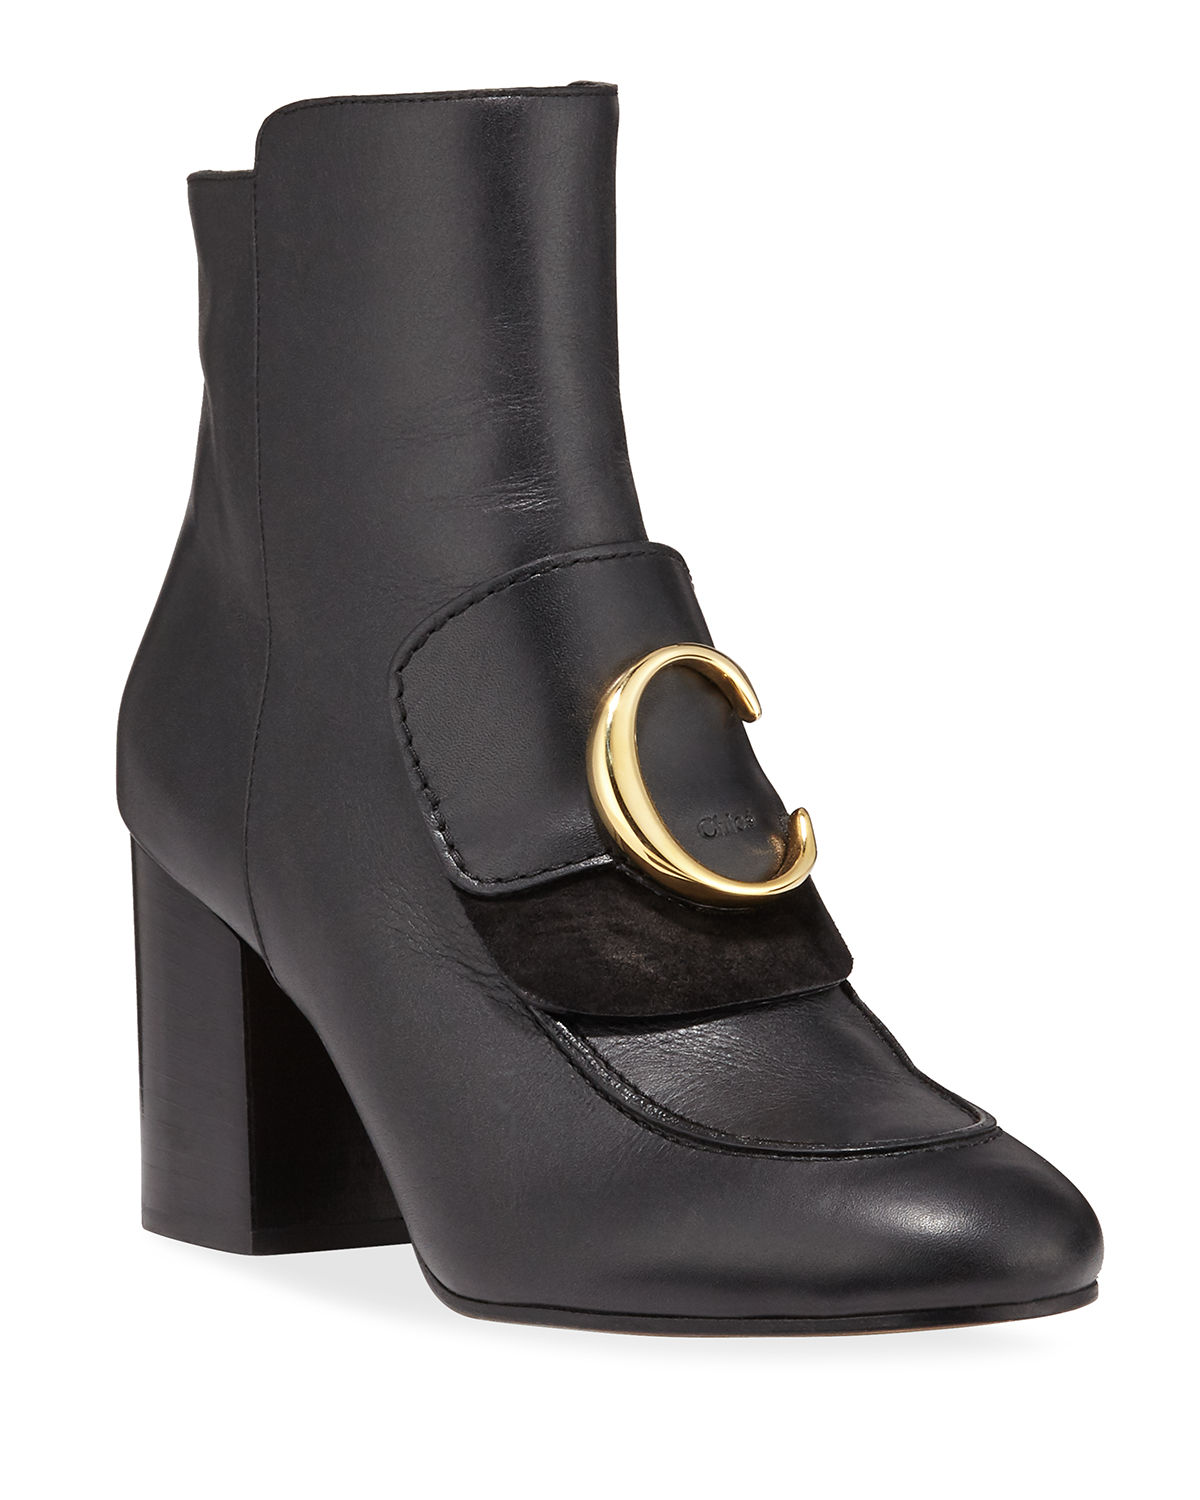 Chloé Boots C LEATHER ZIP BOOTIES